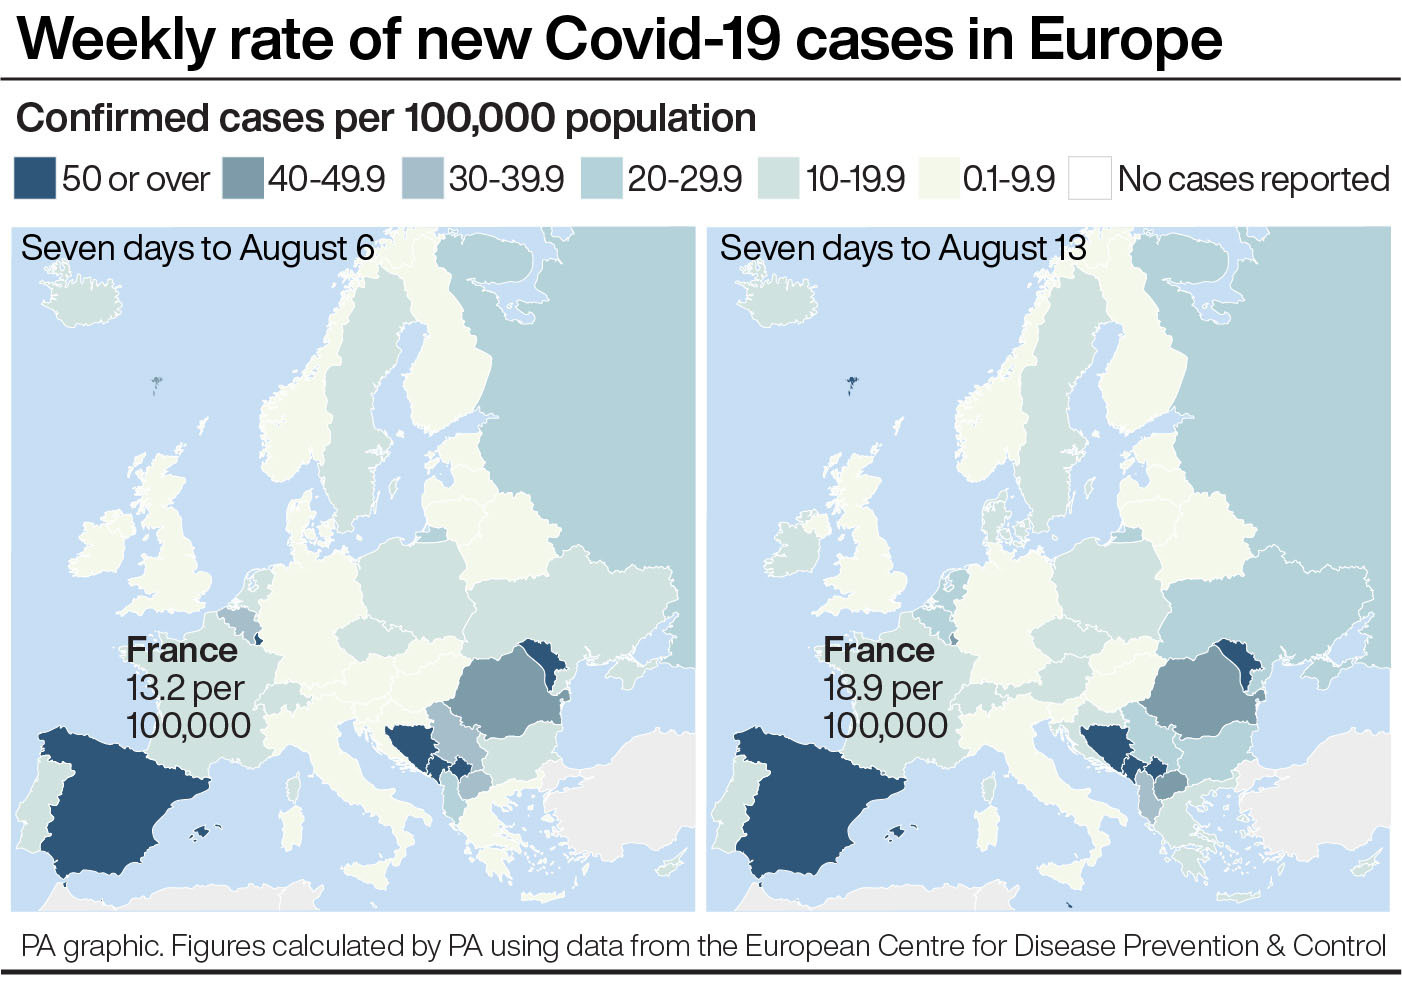 Weekly rate of new Covid-19 cases in Europe